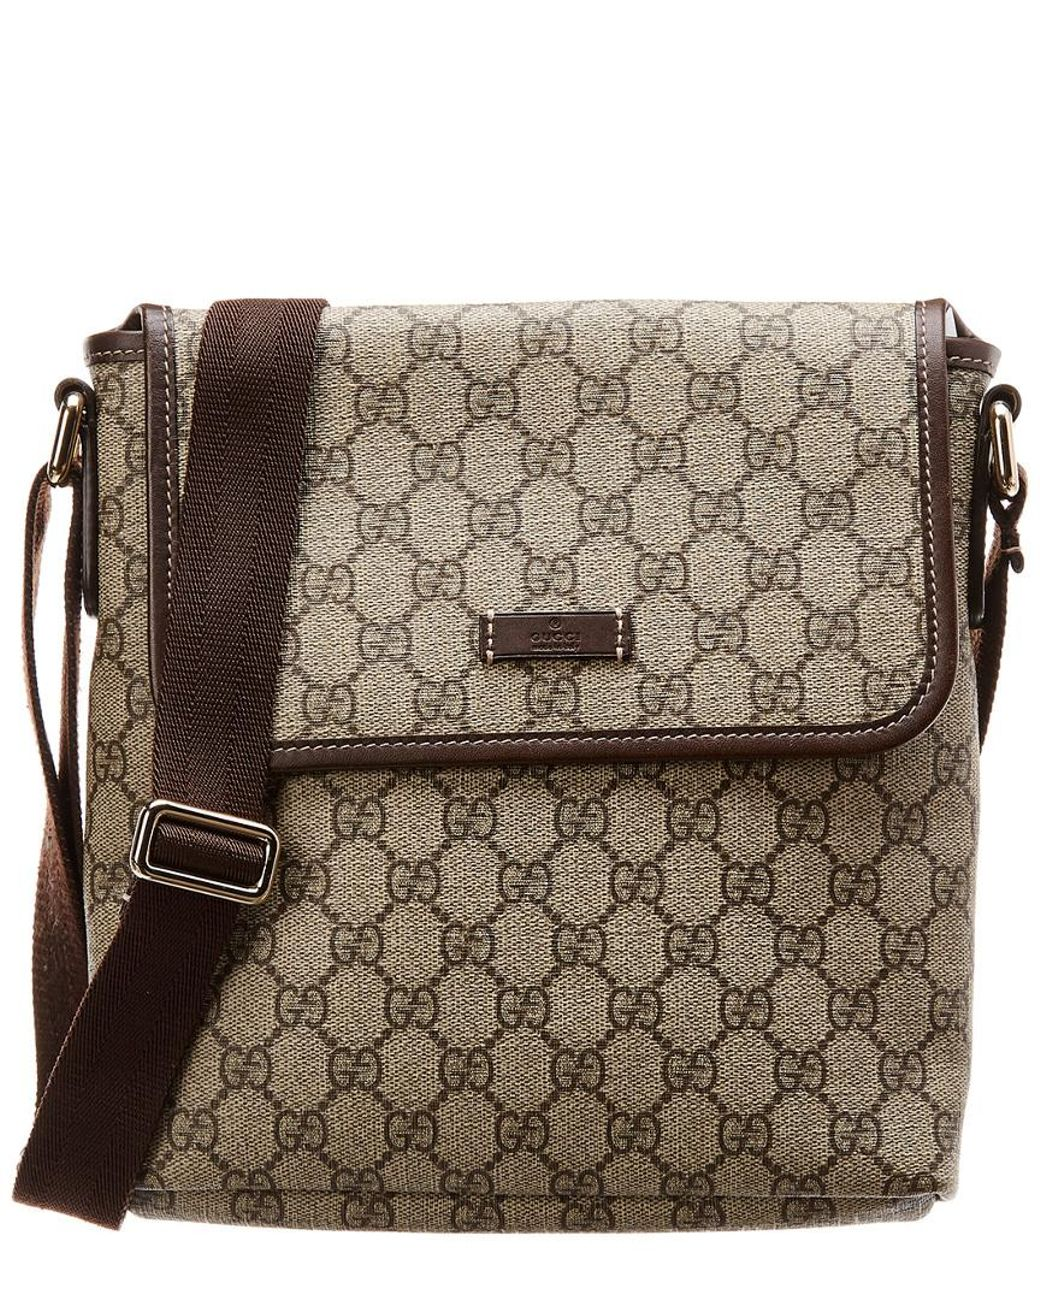 8446f645e9b Long-Touch to Zoom. Long-Touch to Zoom. 1  2  3  4. Gucci - Brown GG Supreme  Canvas   Leather Messenger Bag - Lyst ...